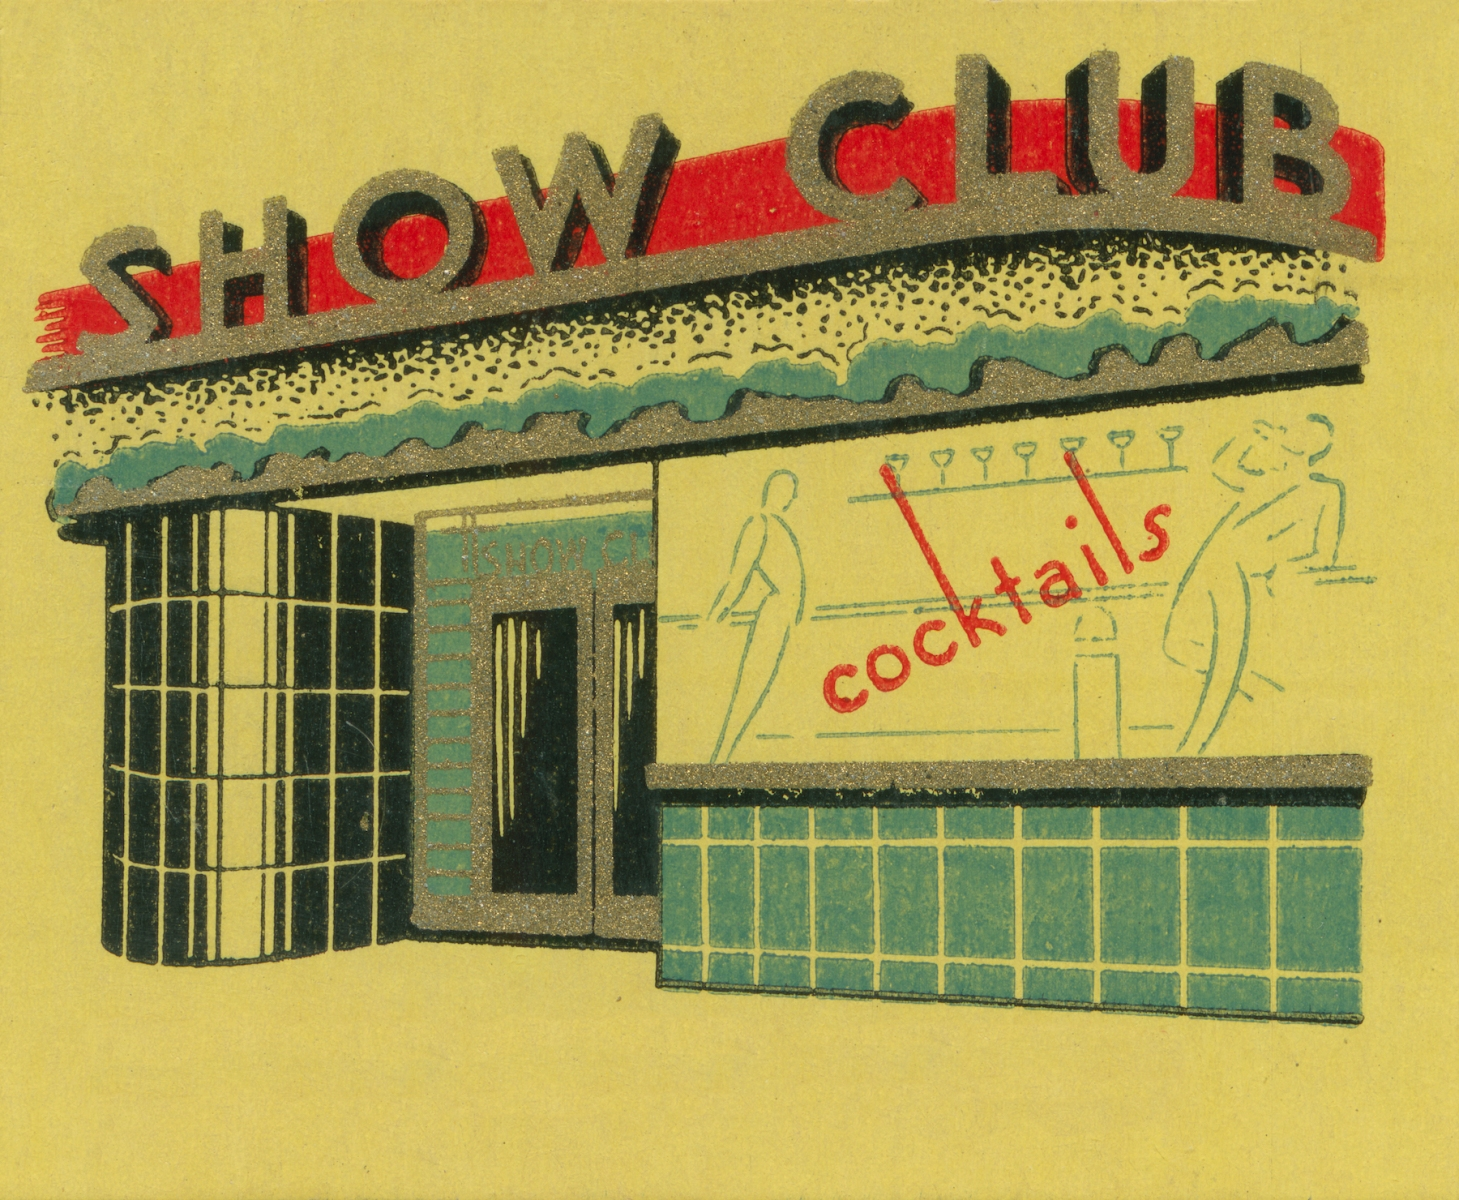 Matchbook image of exterior tiled nightclub. Ad for Show Club. Italian nightclub promotor Maurizio Zanfanti died this week while reportedly having sex. Photo by Jim Heimann Collection/Getty Images)